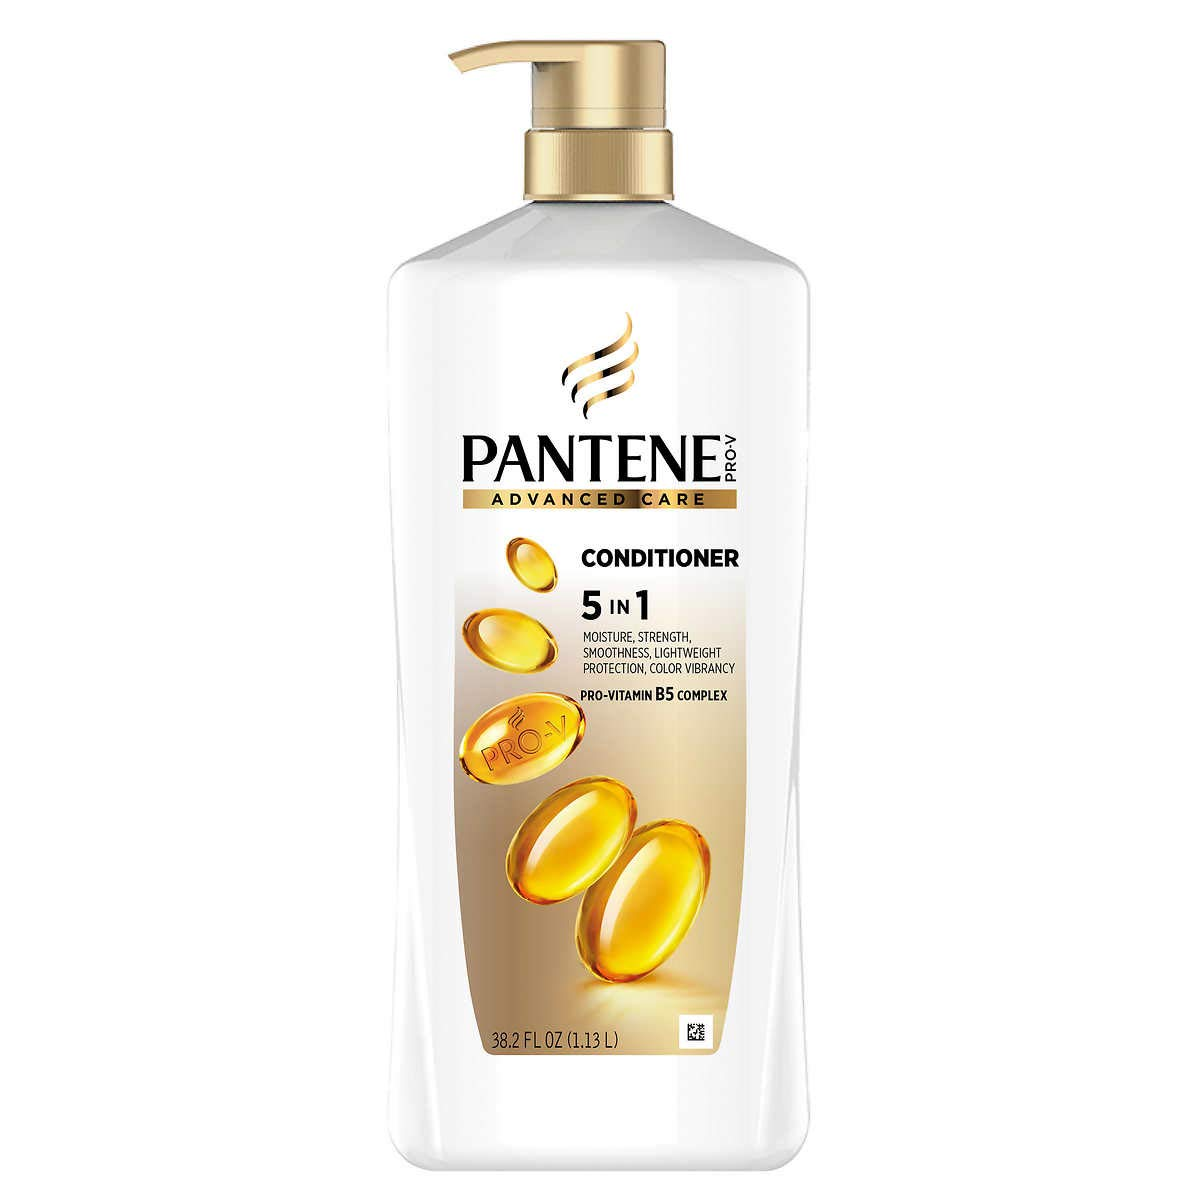 Pantene Advanced Care Conditioner, 5 in 1 Moisture, Smooth, Lightweight, Strength, Color Vibrancy, 38.2 Ounce